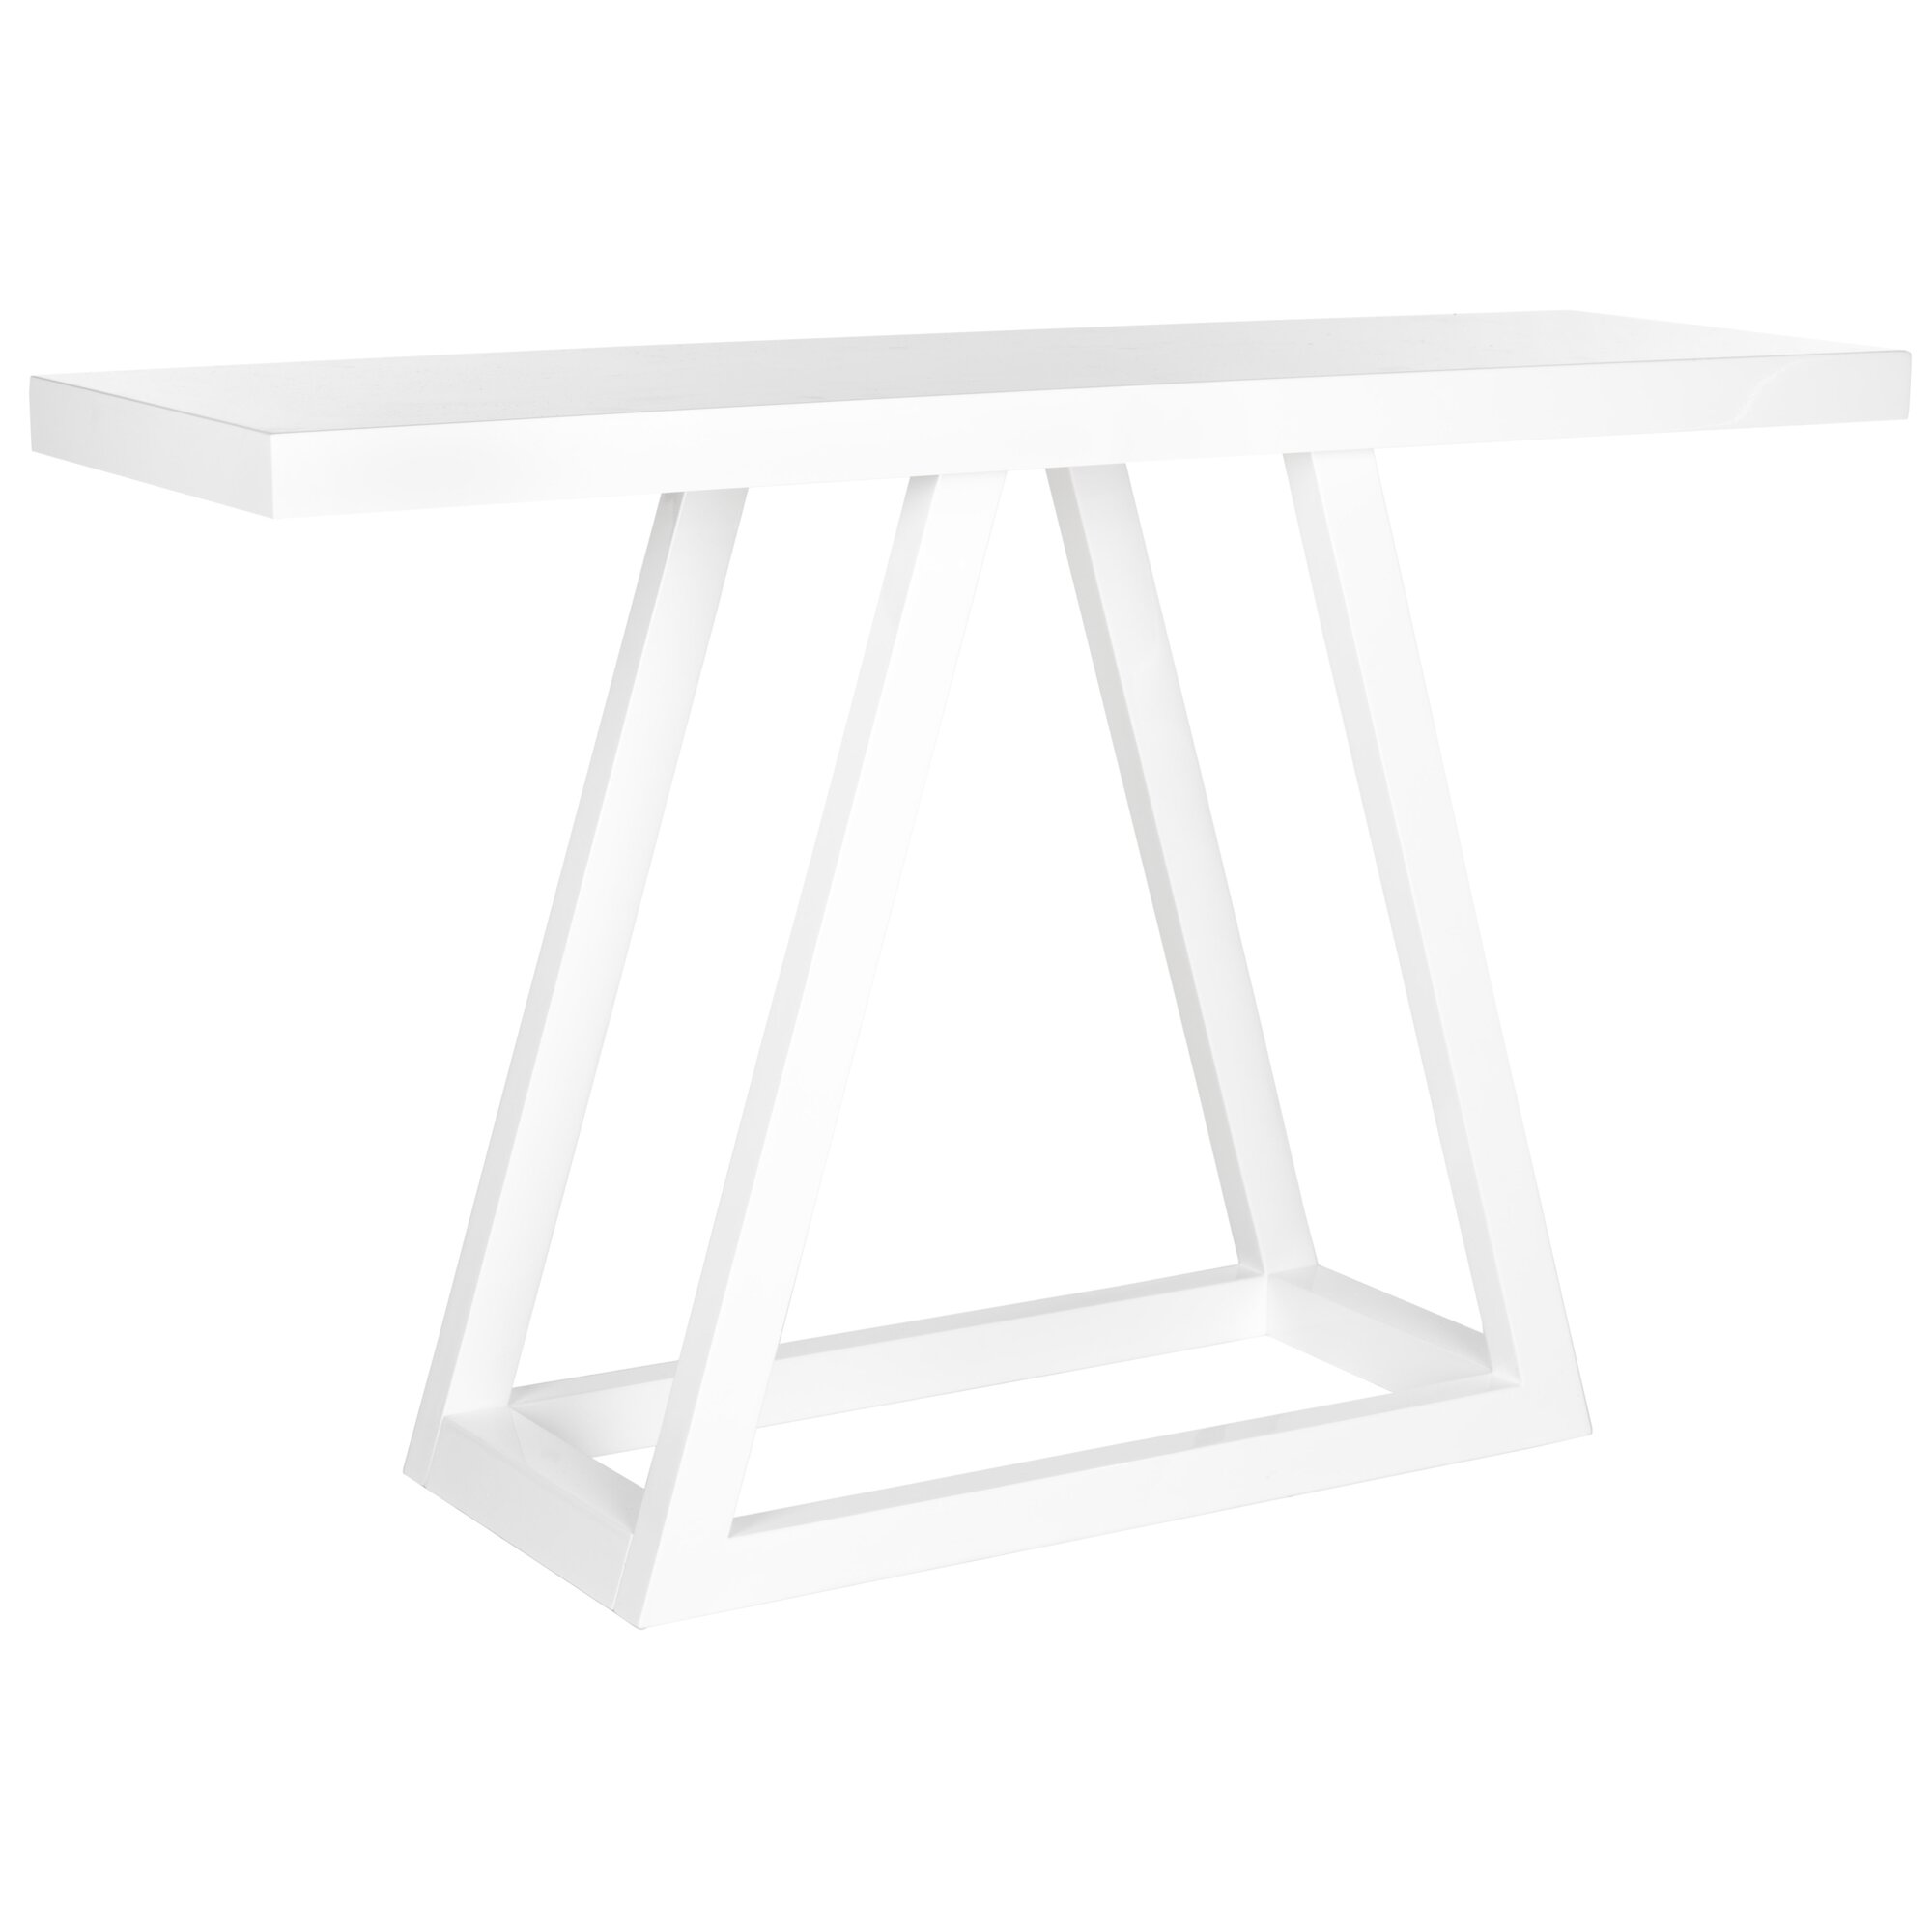 Modern Adobe House Plans further Grace Collection Large Console Table CN4919 GG1121 in addition Belaire Console Table BRSD2306 BRSD2306 also Breakwater Bay Loveseat Cushion BRWT5614 in addition Outdoor Sunbrella Chair Cushion WFCSET VQM2426. on dog sofa beds for sale